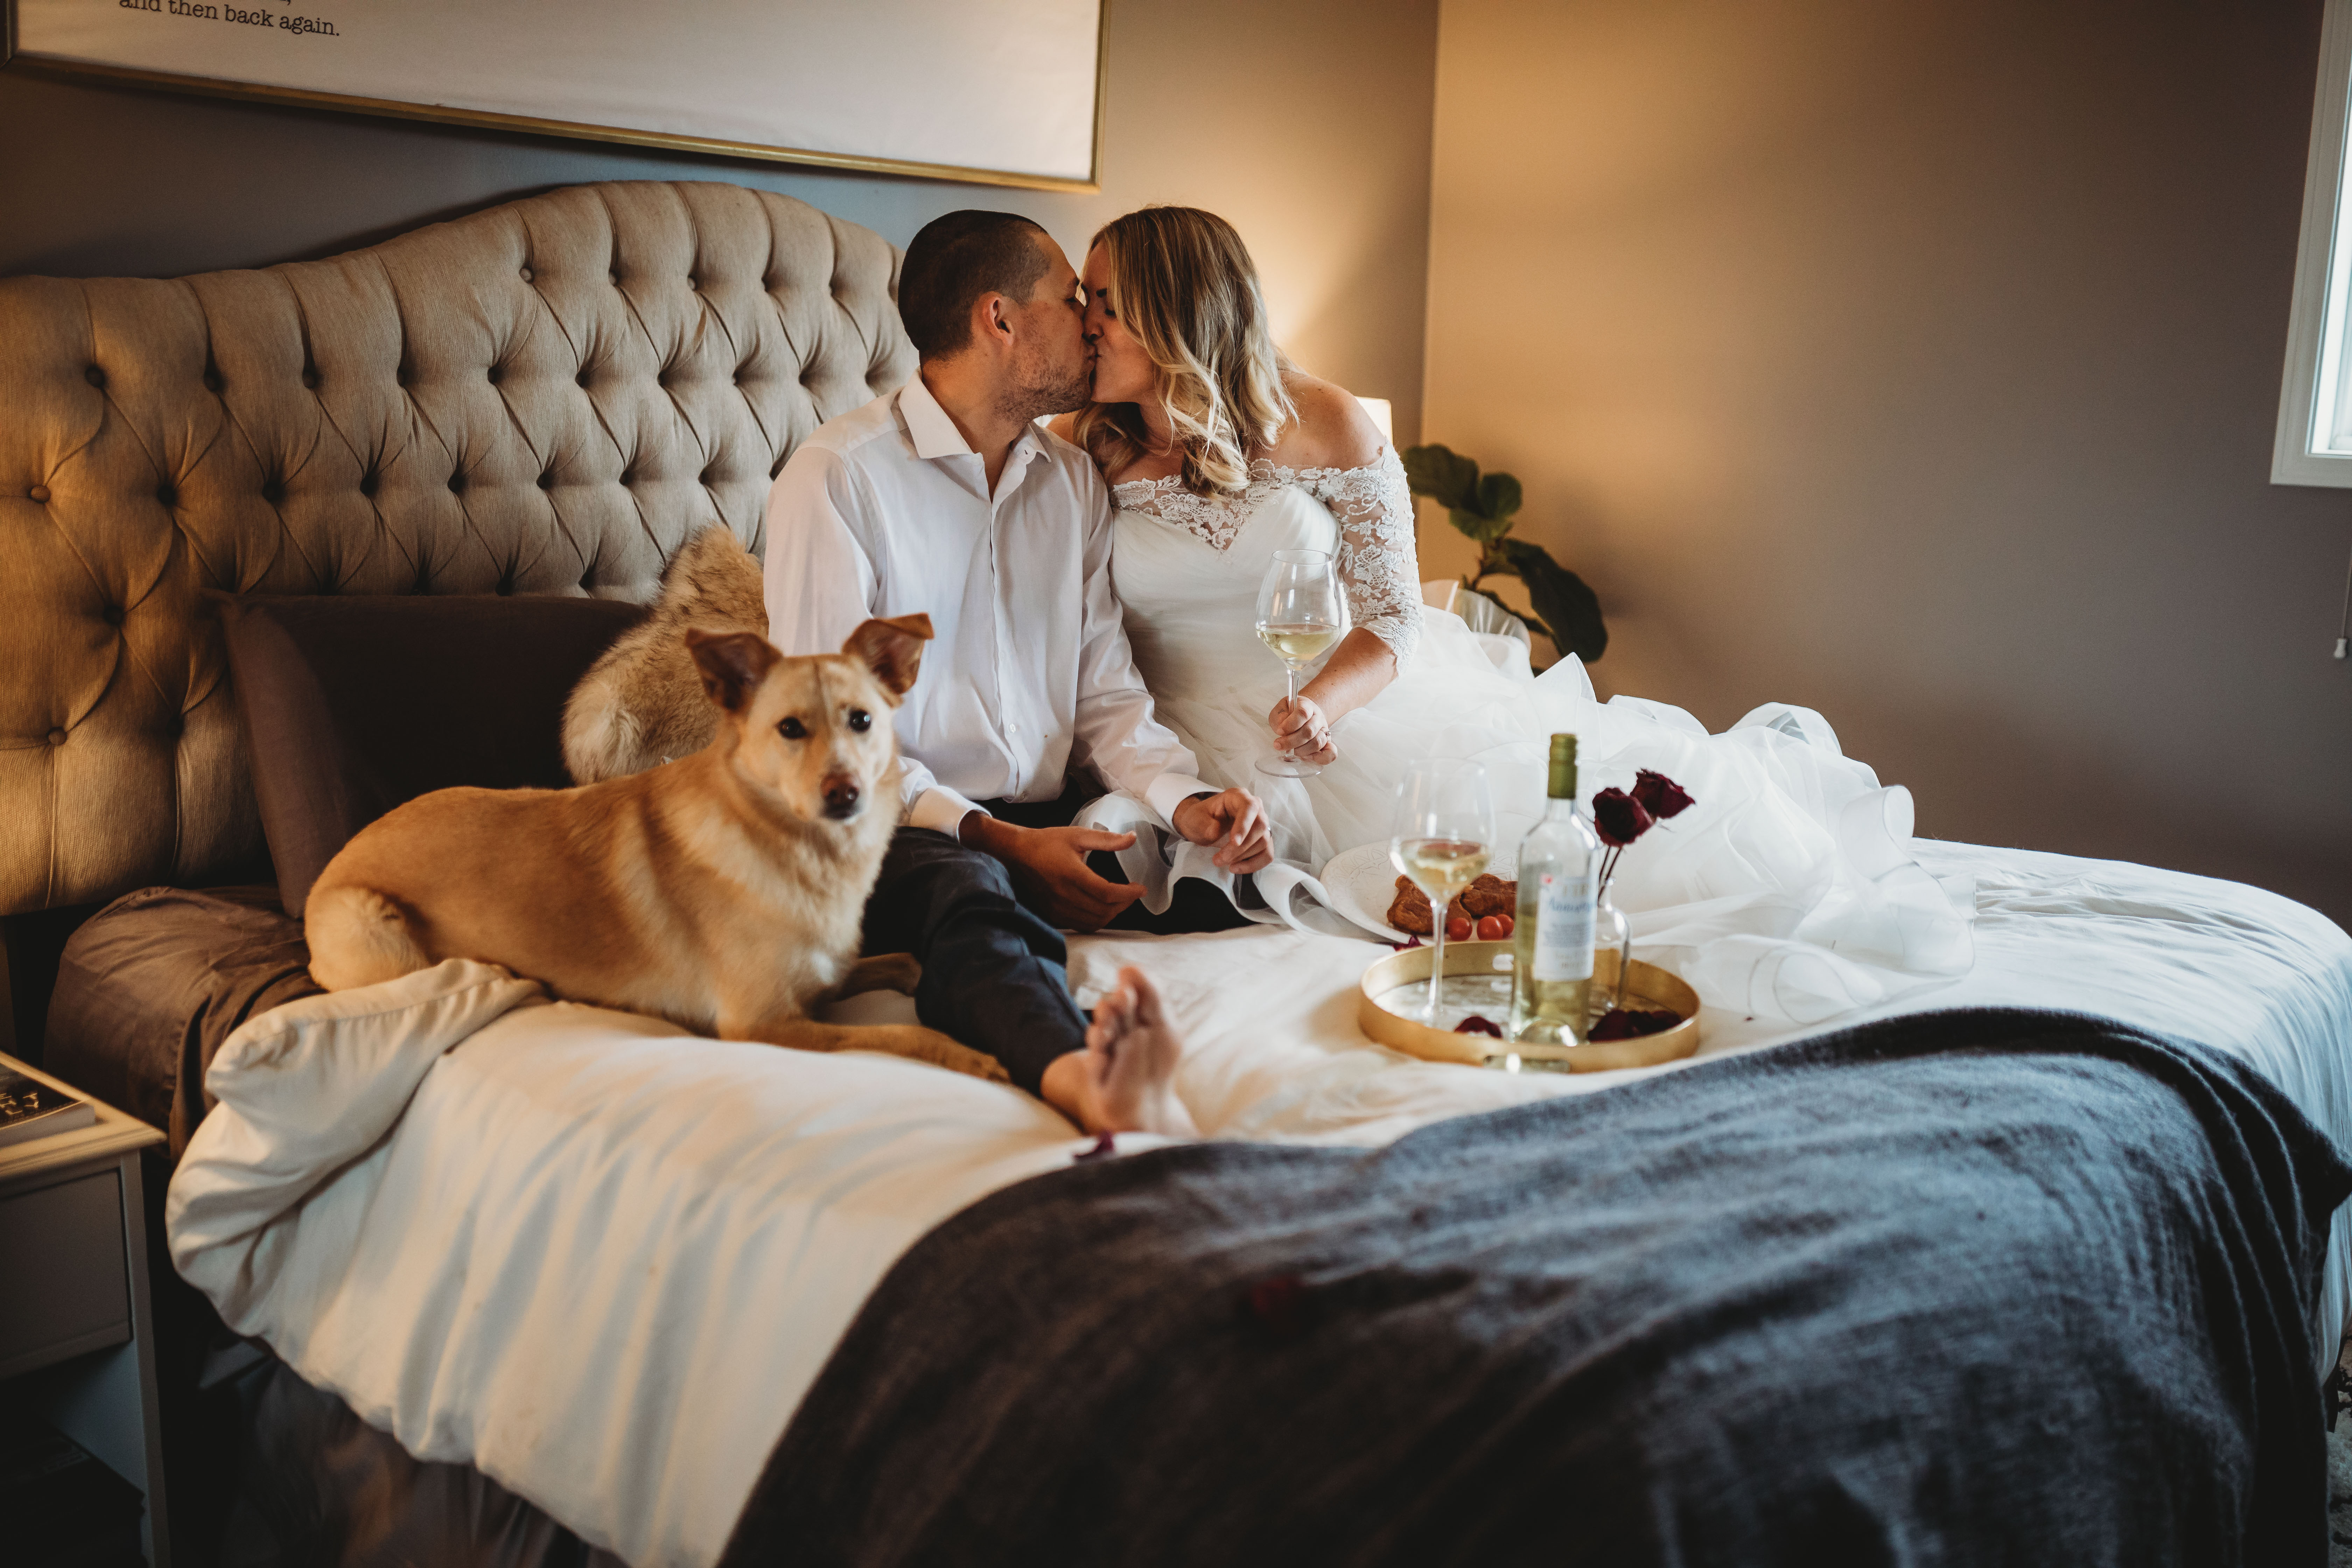 Barrie Wedding Planner, Wedding Planner, Wedding Anniversary, First Anniversary, Married, Married Life